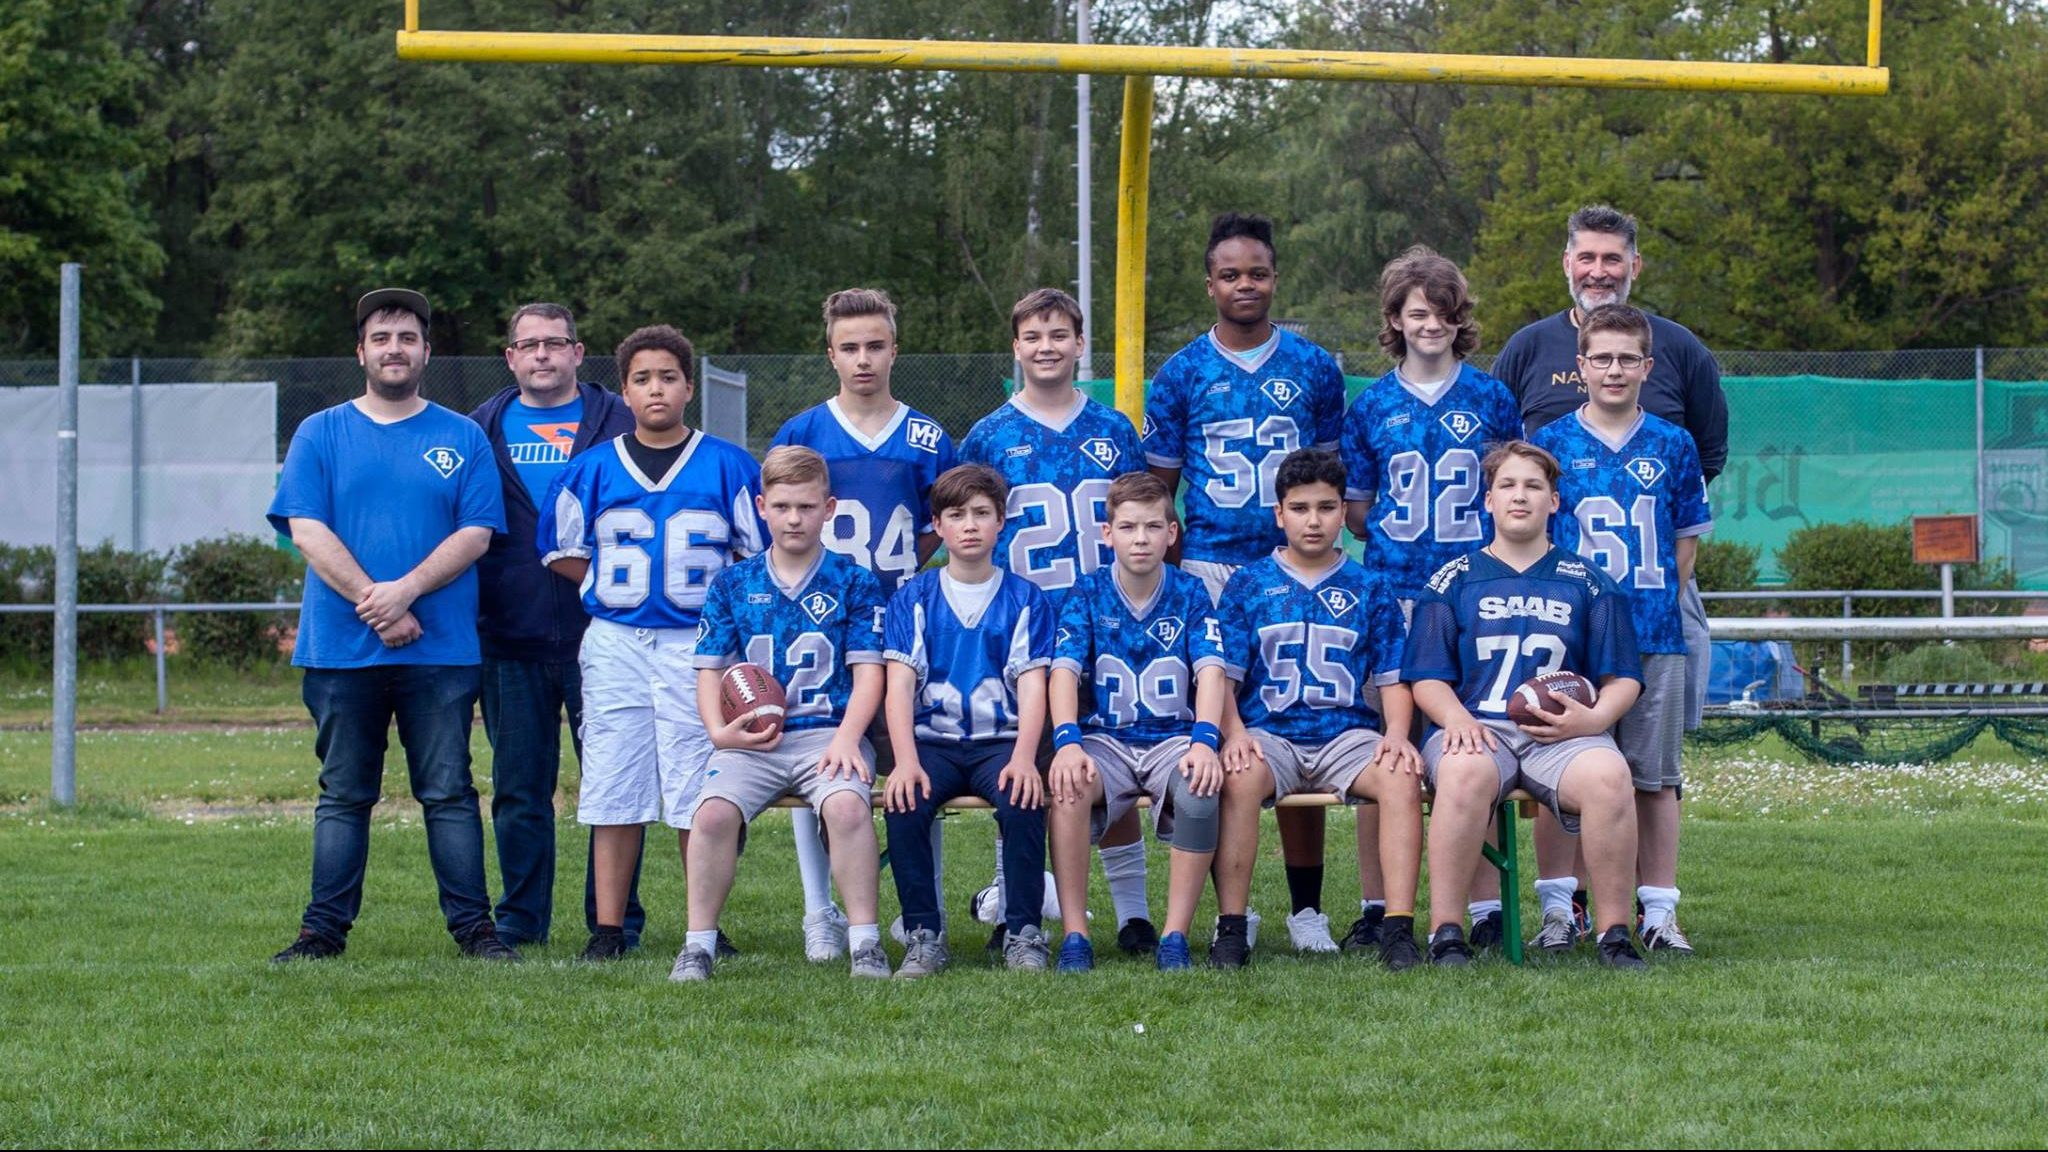 Teamfoto Flag Football Jugend